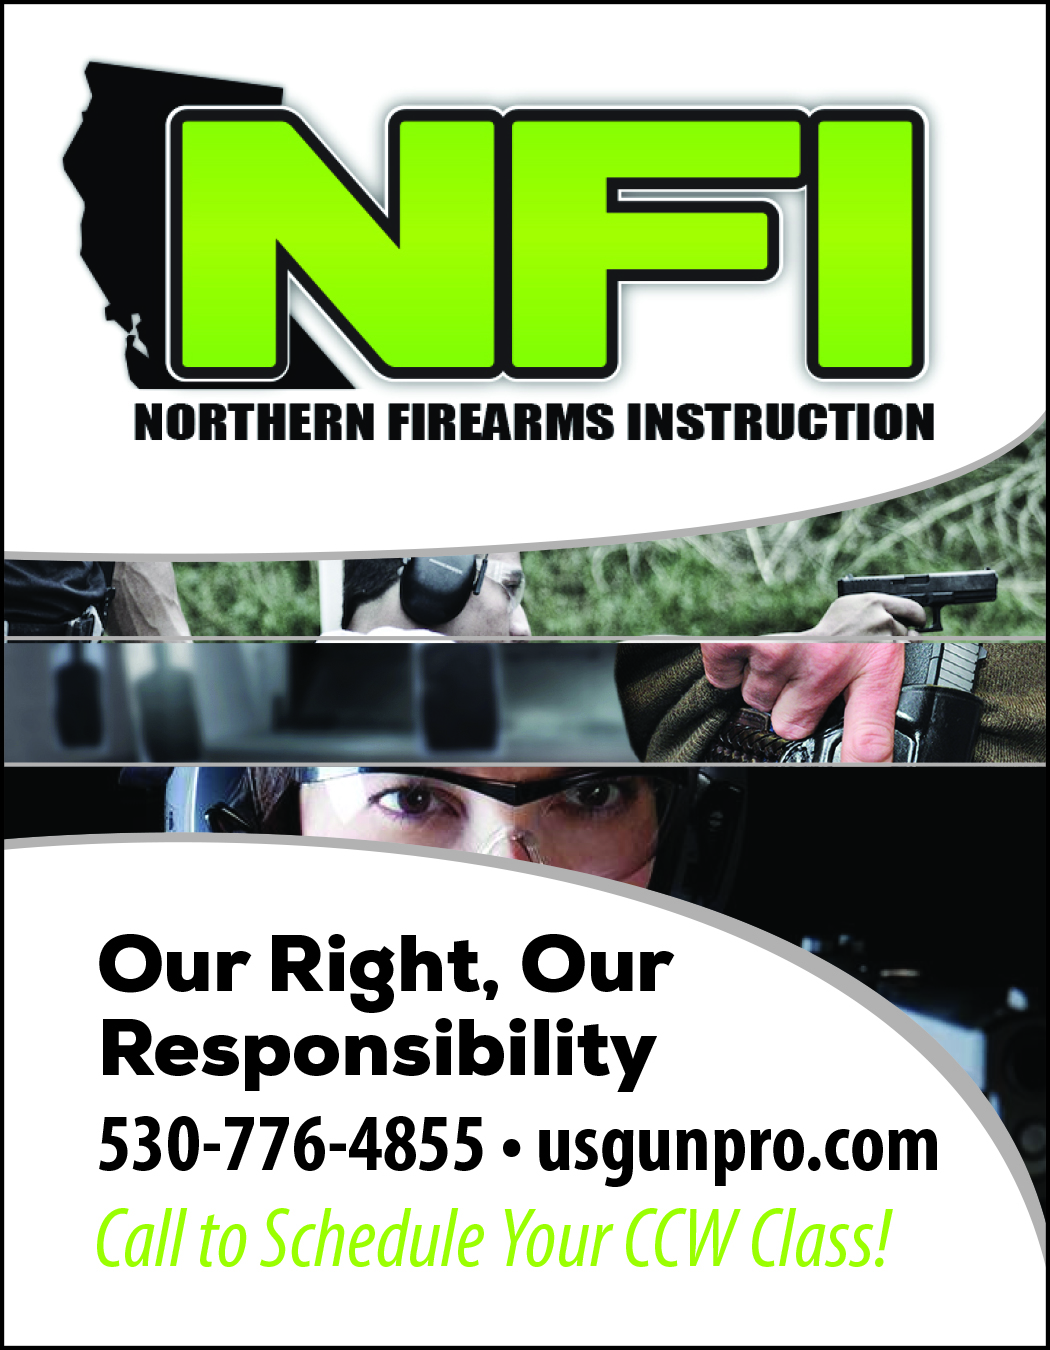 Northern Firearms Instruction